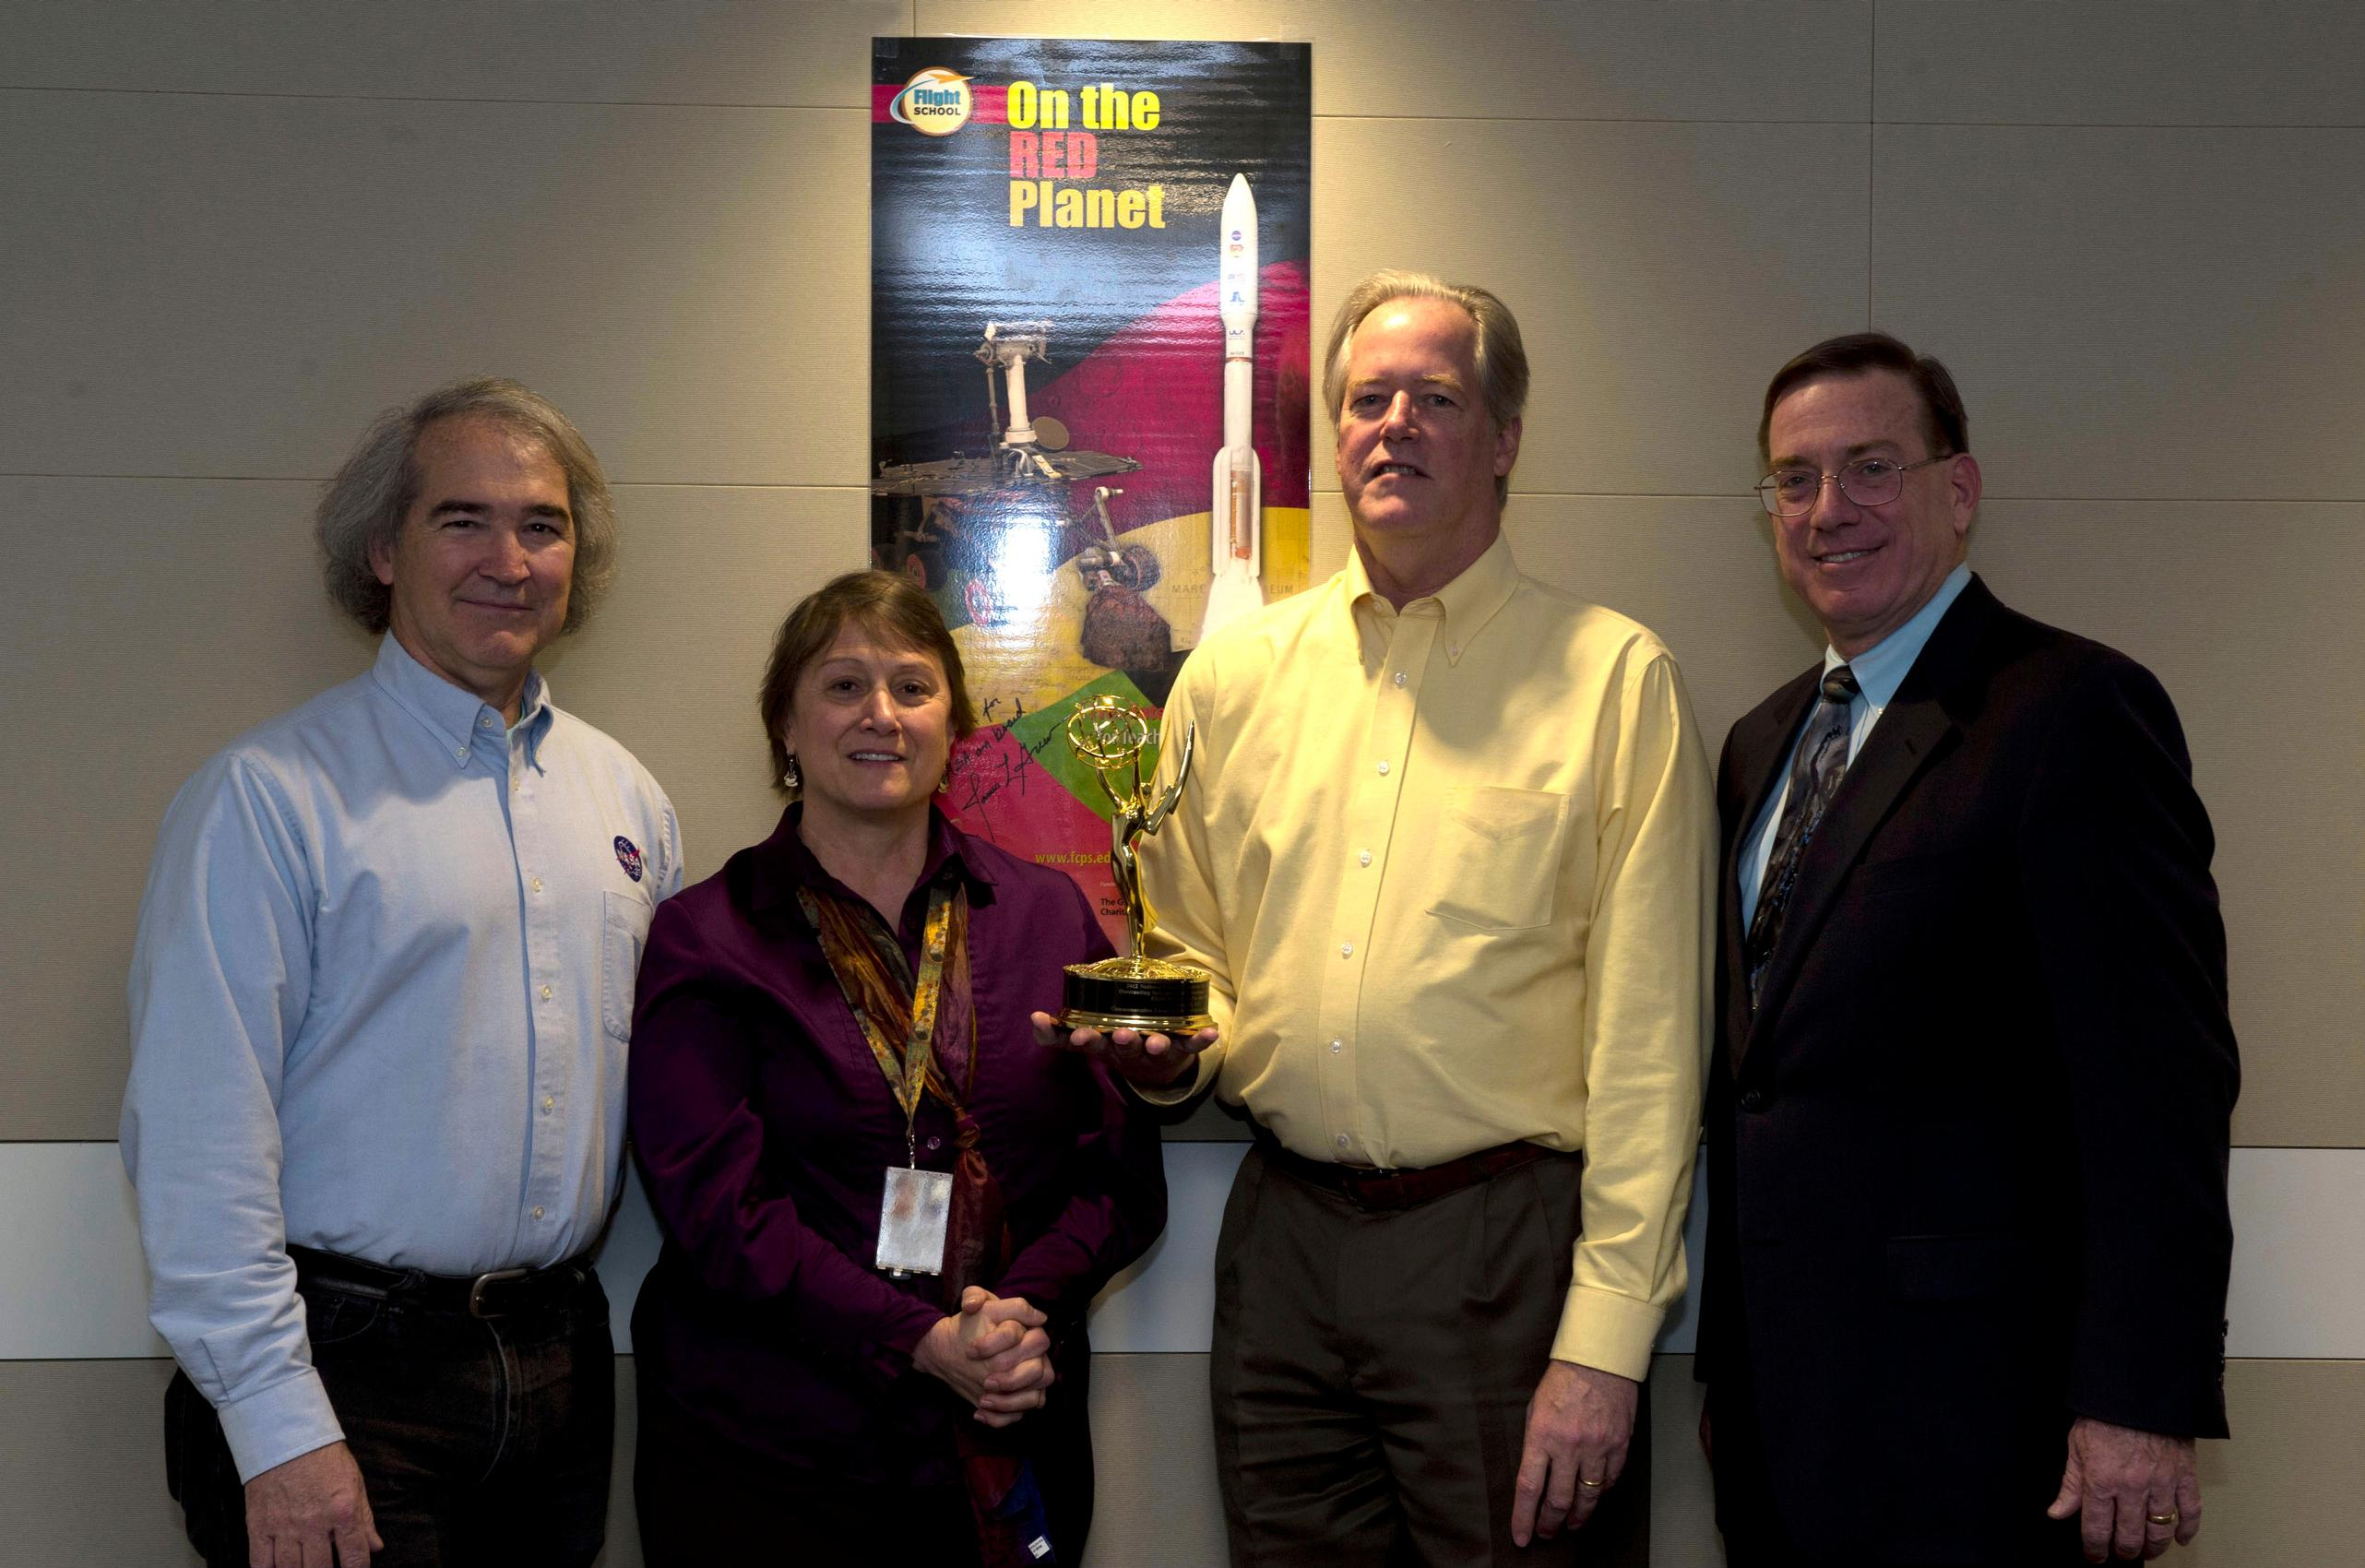 NASA Mars Exploration Program and NASM contributors pose with the Emmy statue.